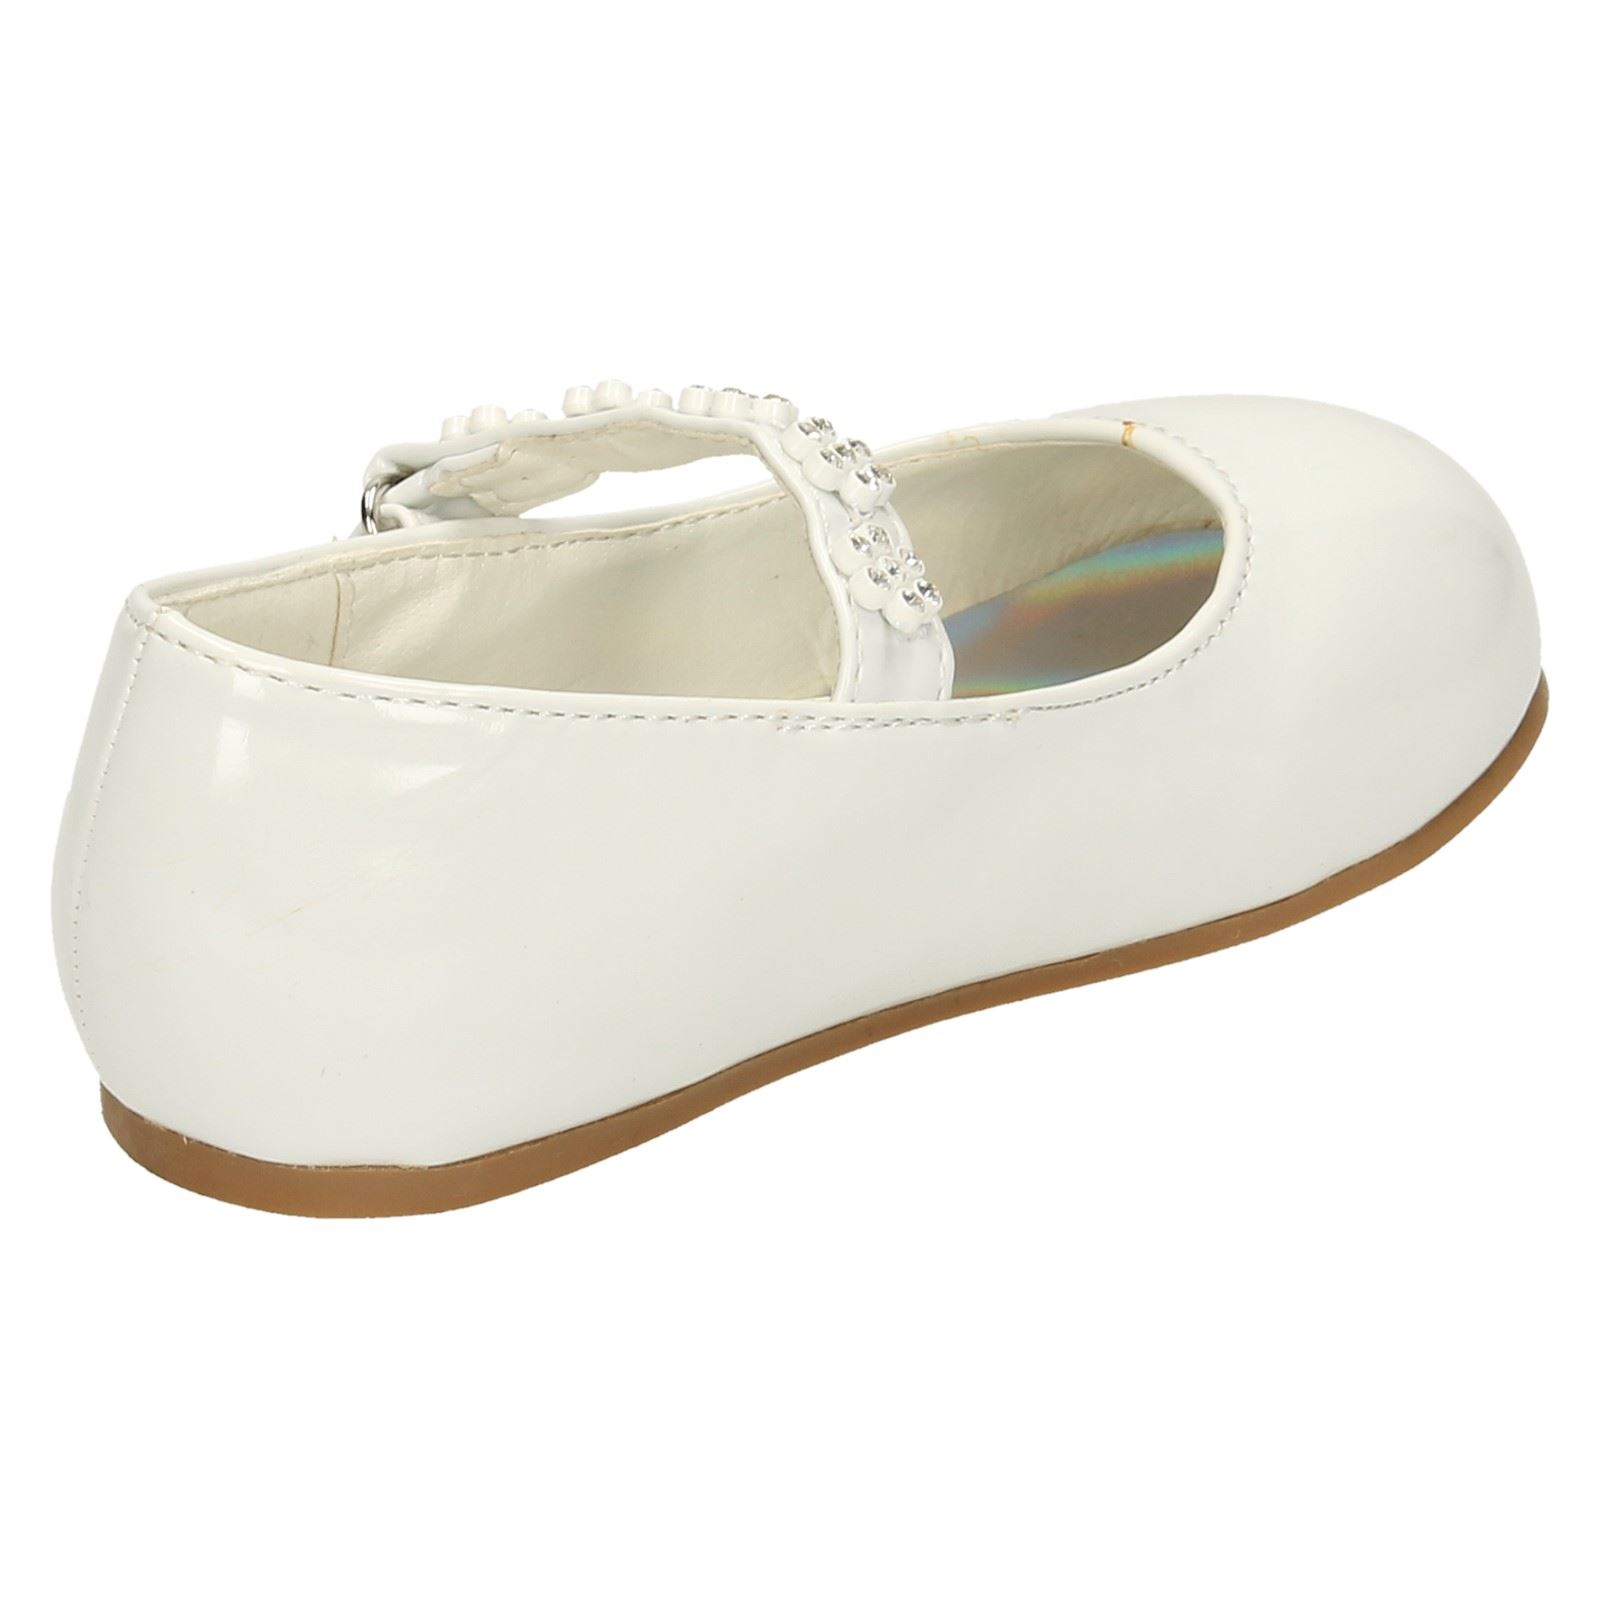 Girls Savannah Flat Ballerinas